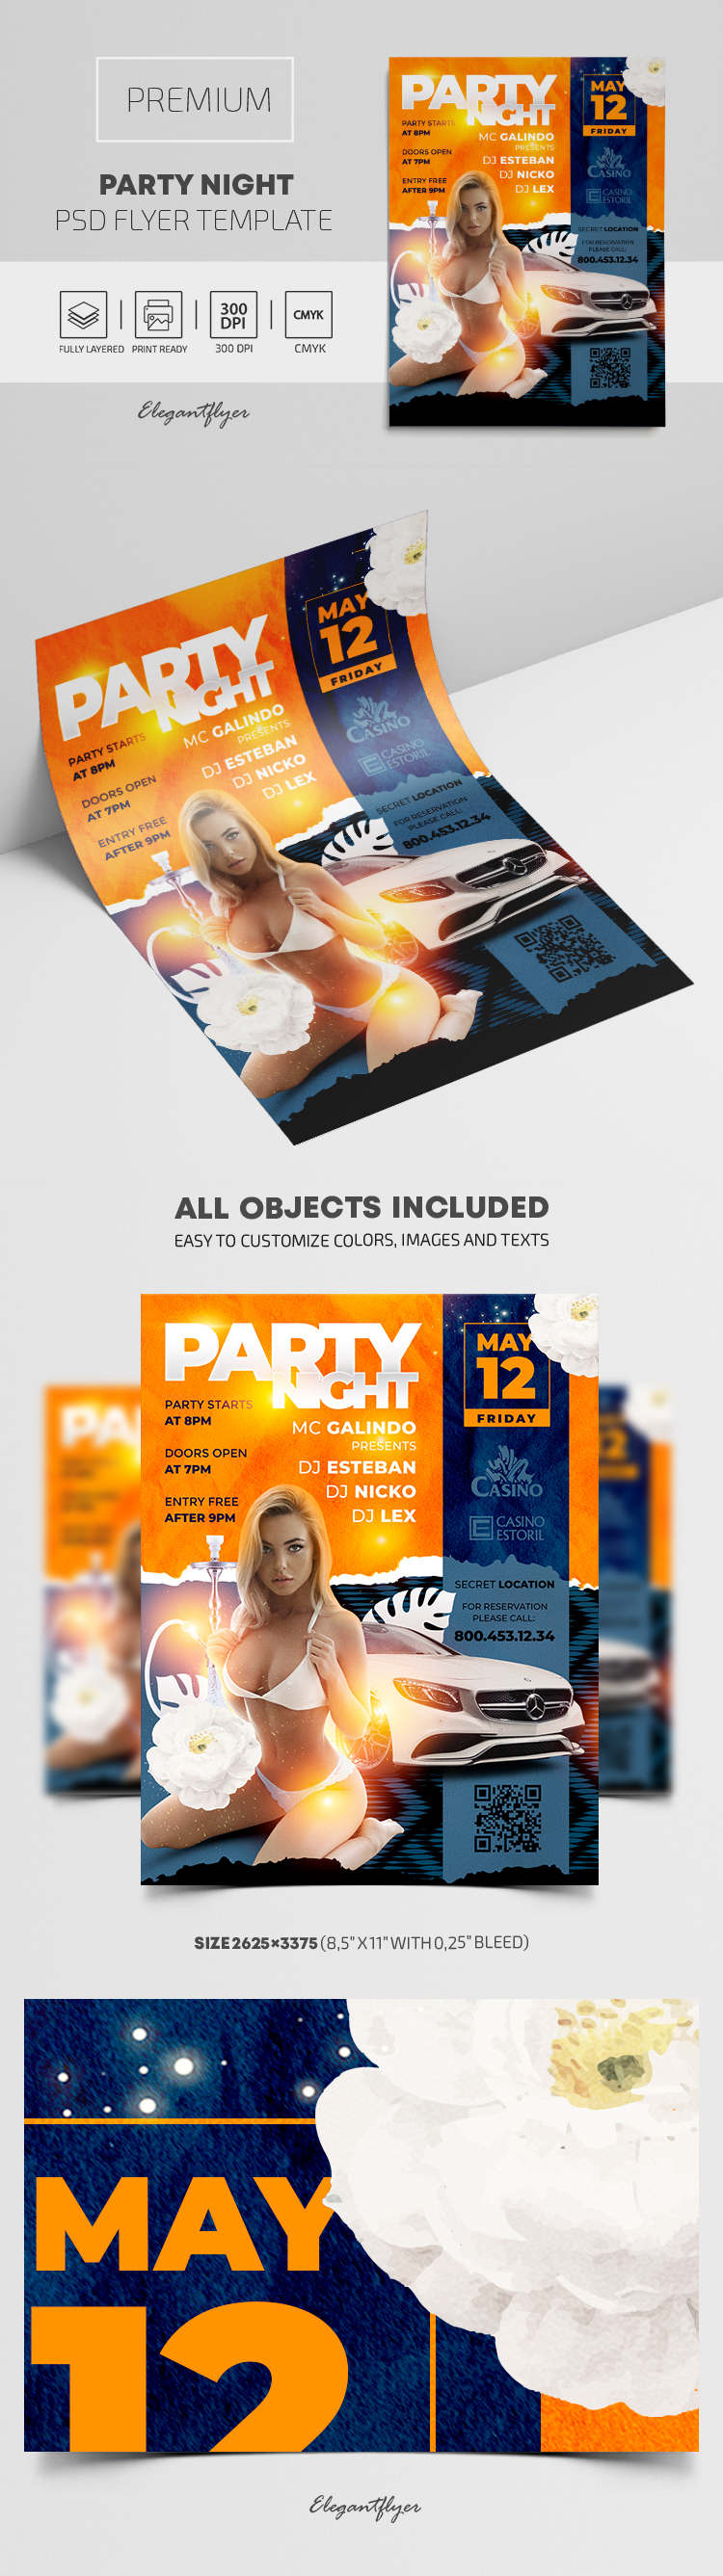 Party Night – Premium PSD Flyer Template